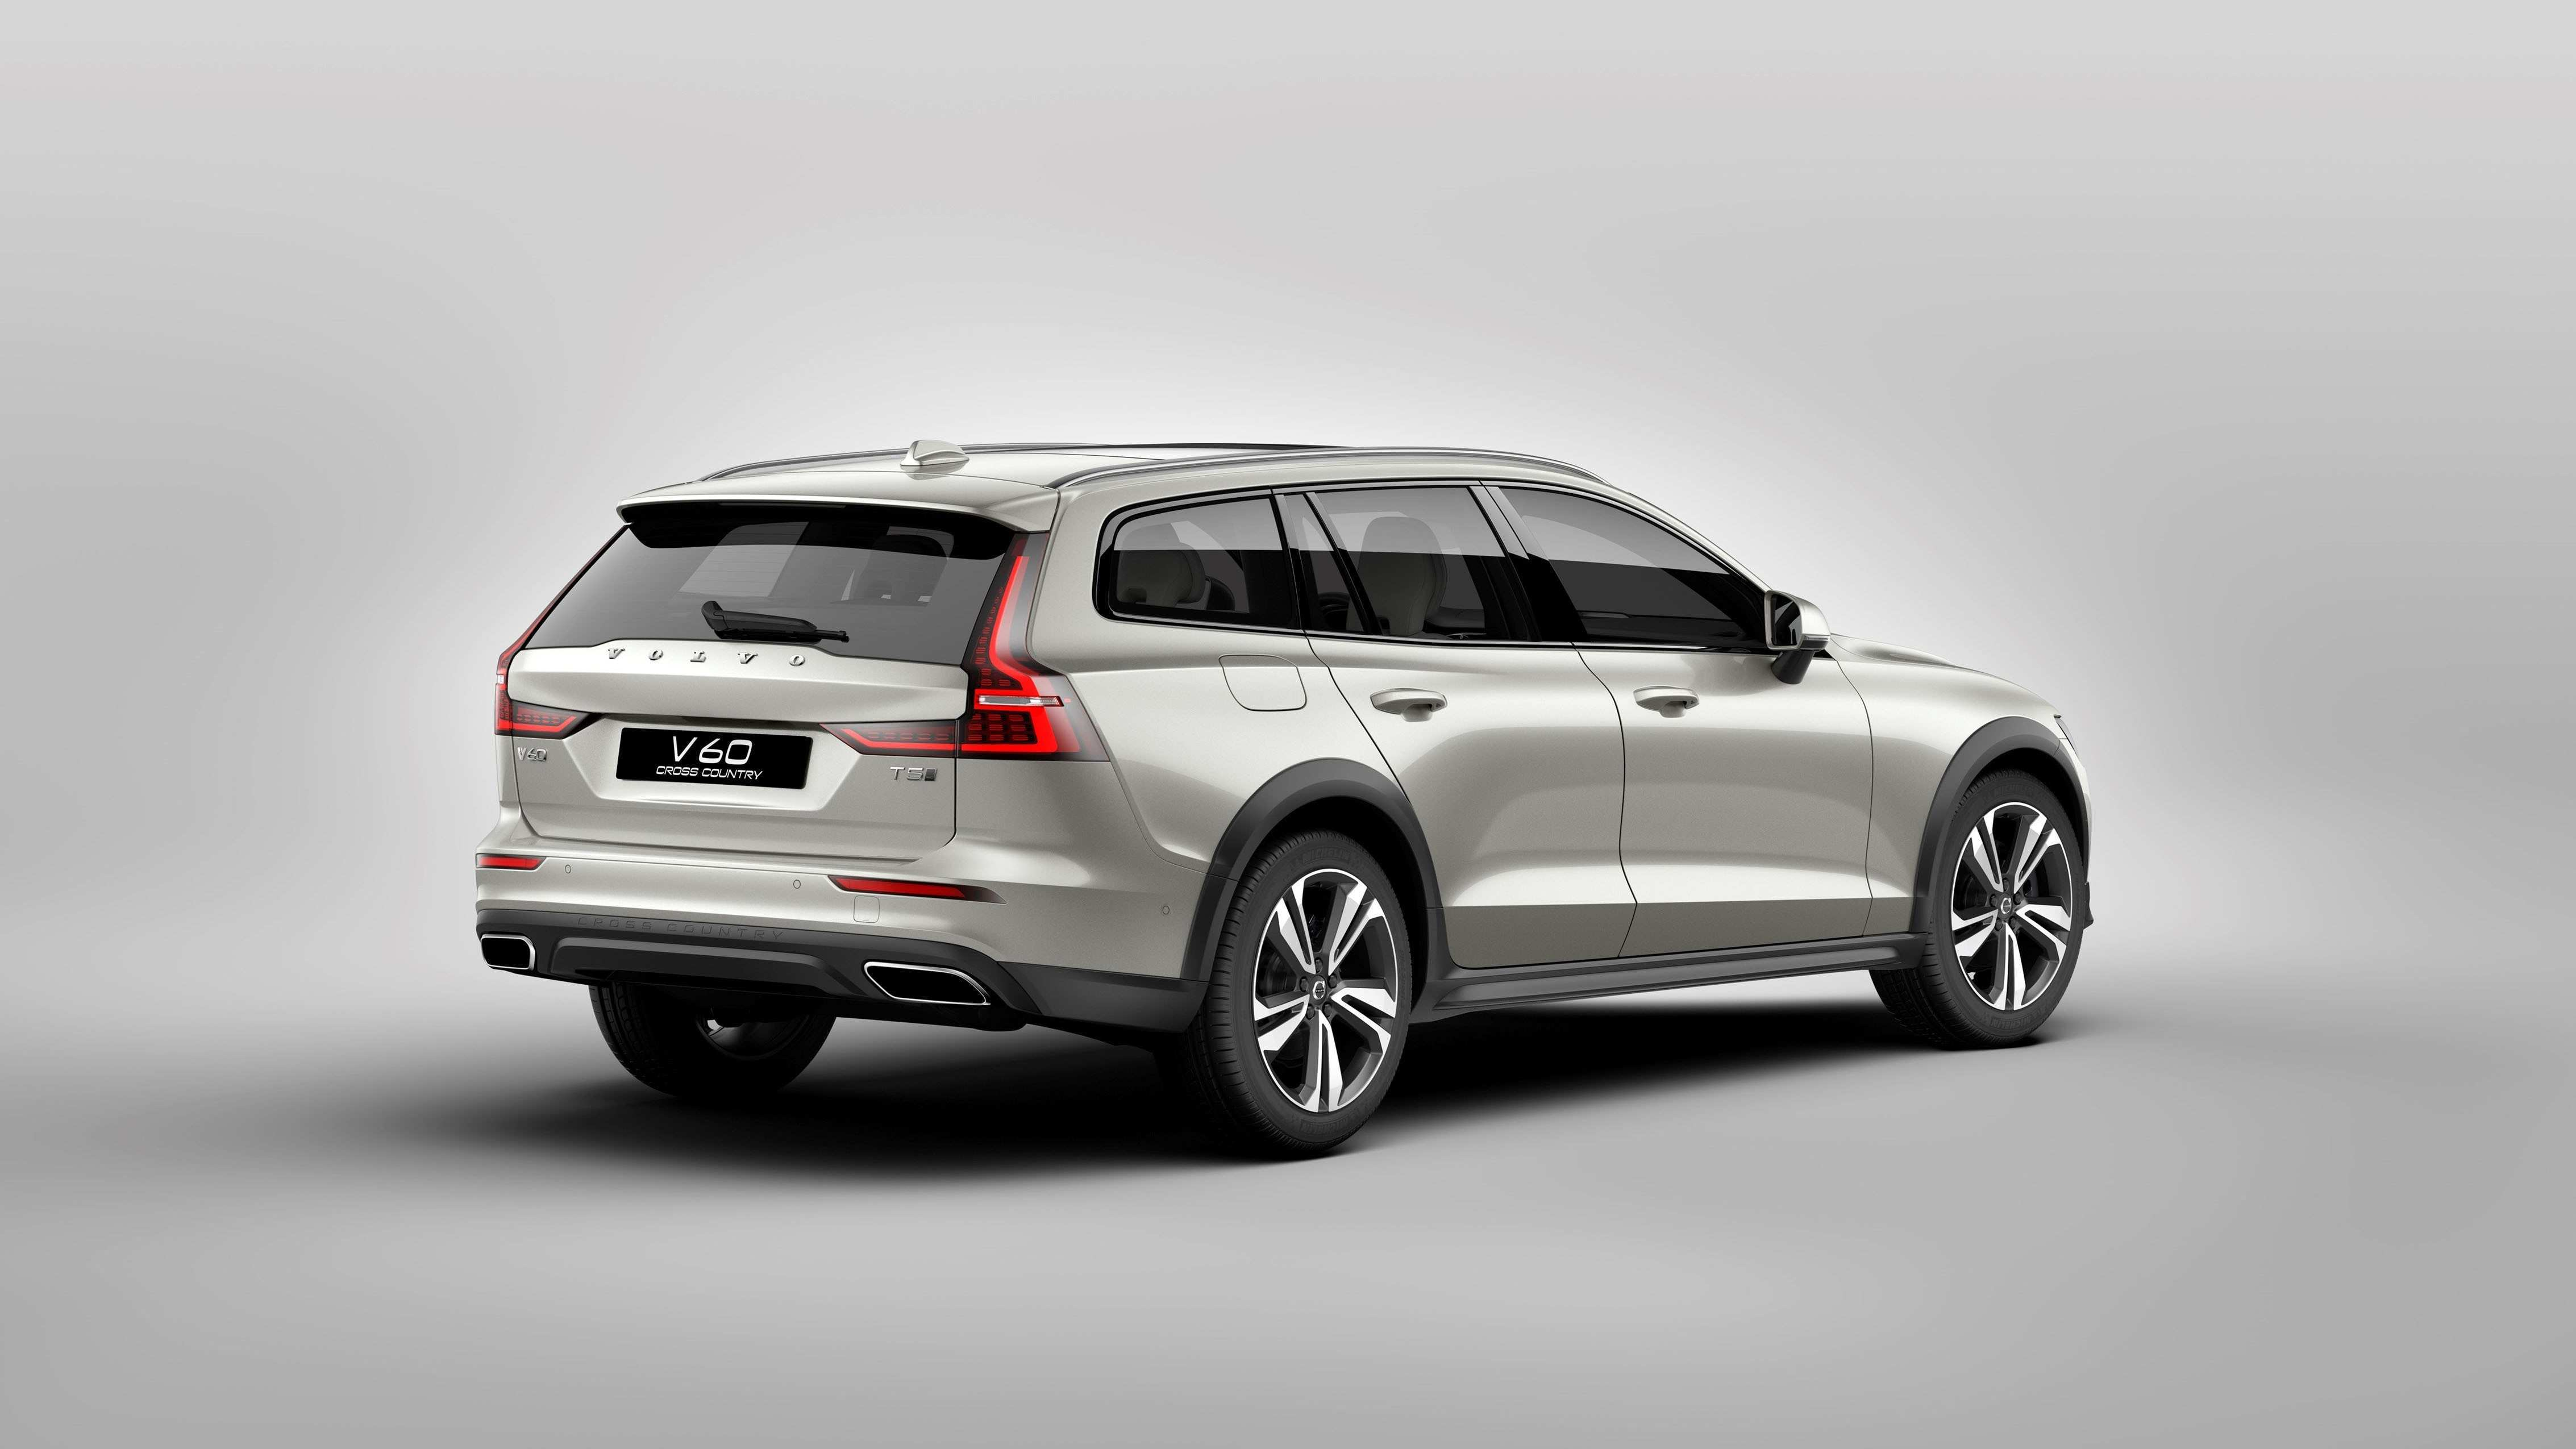 69 Best Review 2020 Volvo Wagon Price and Review with 2020 Volvo Wagon